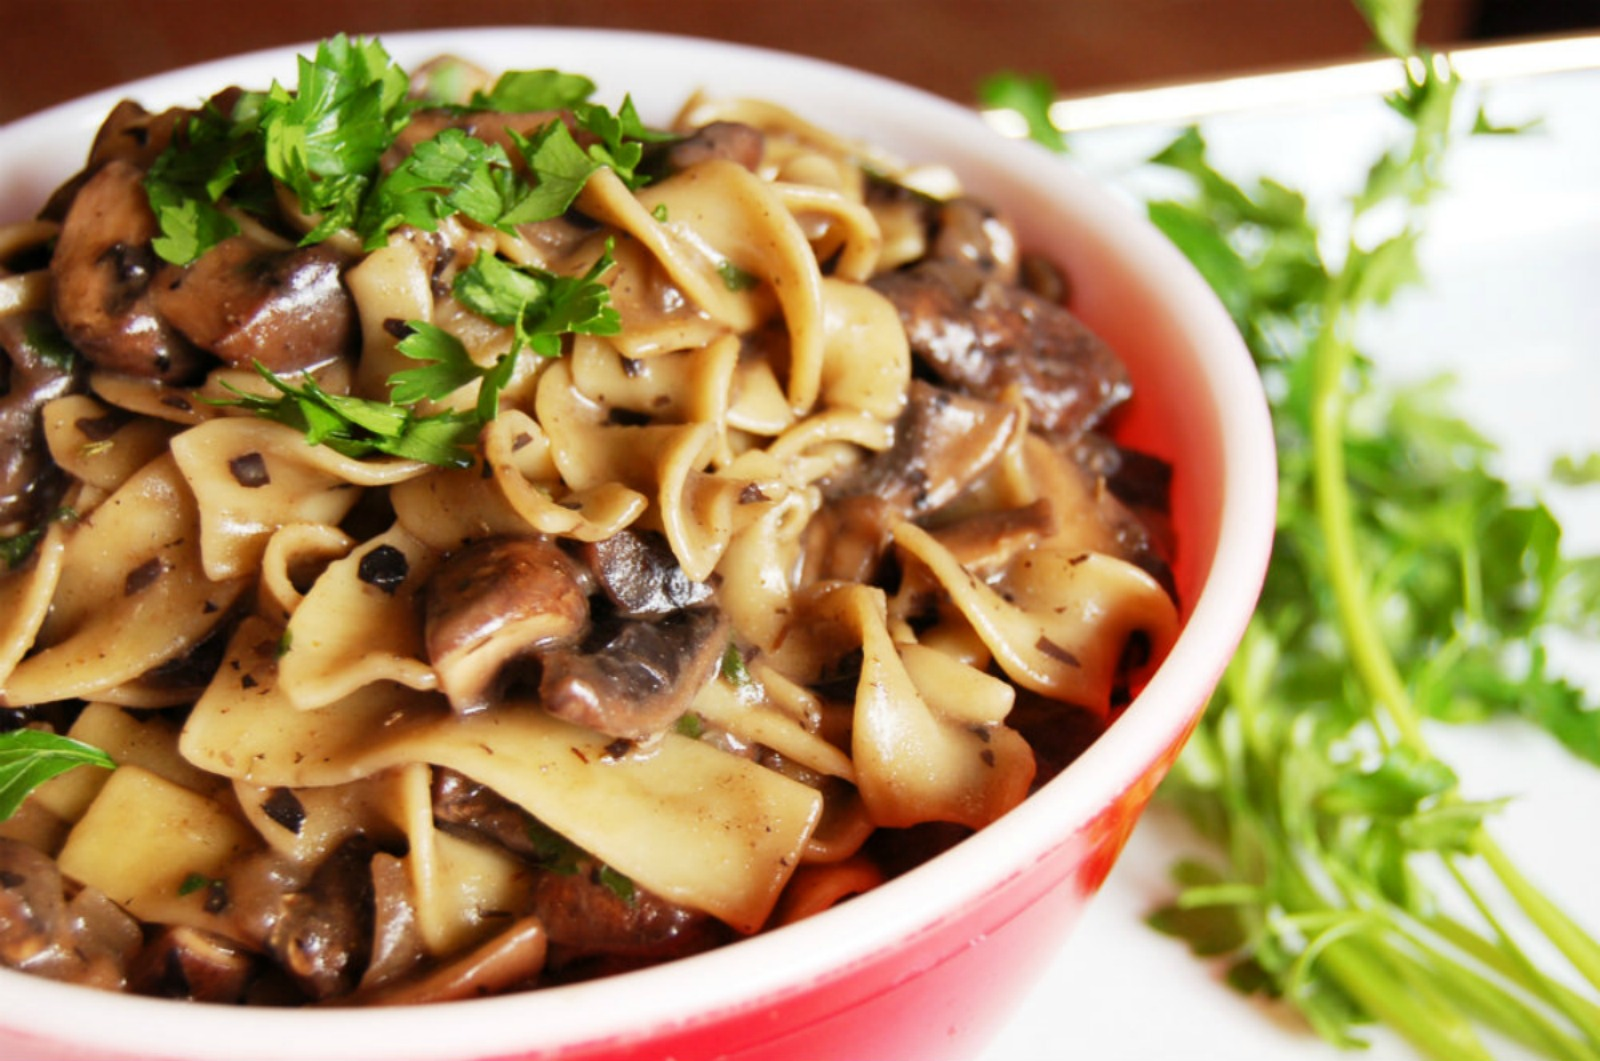 Tips for Making Your Own Noodle Sauces Without a Mix